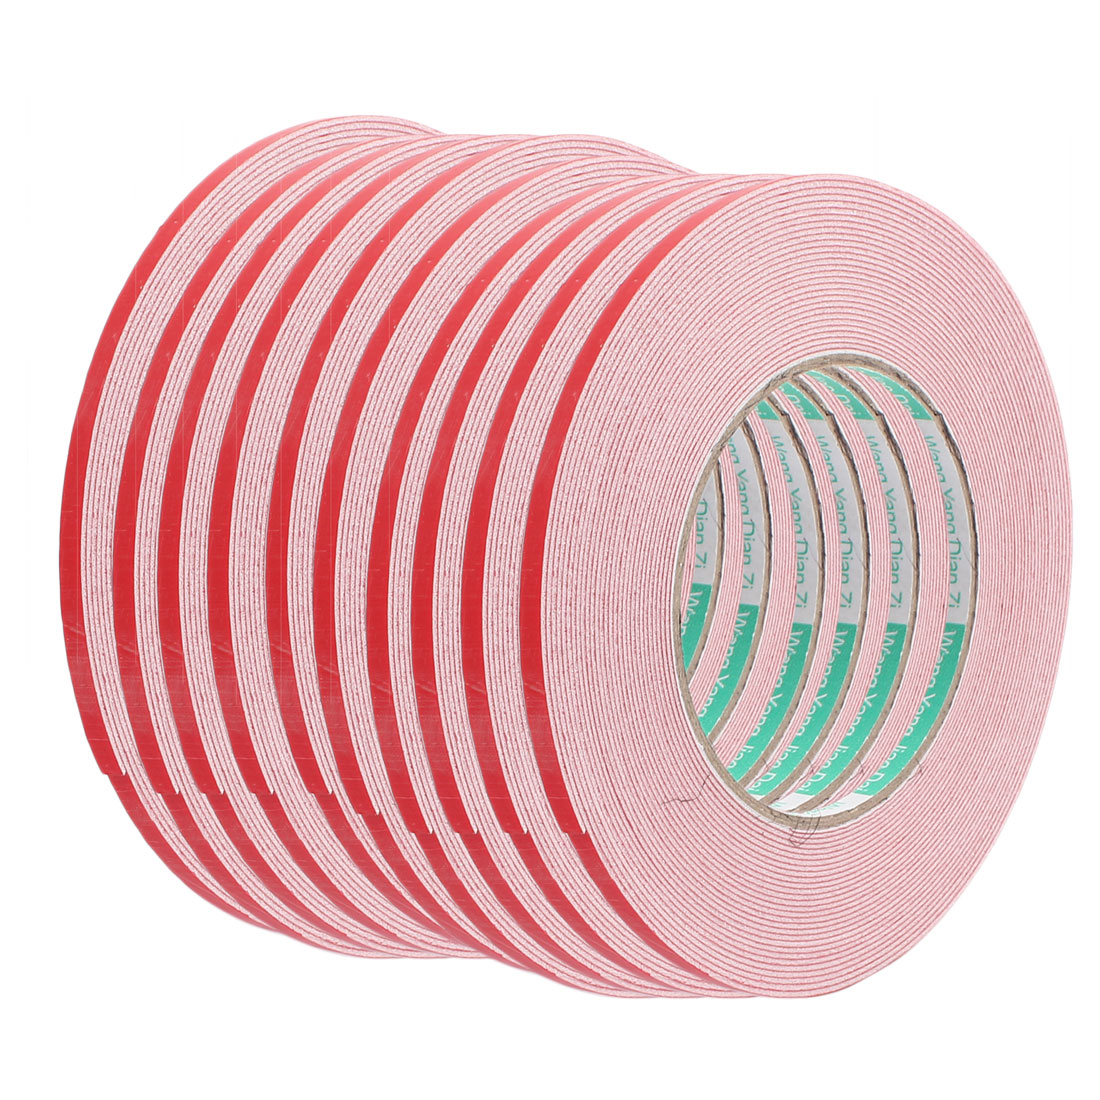 10pcs 10M 6mm x 1mm Dual-side Adhesive Shockproof Sponge Foam Tape Red White